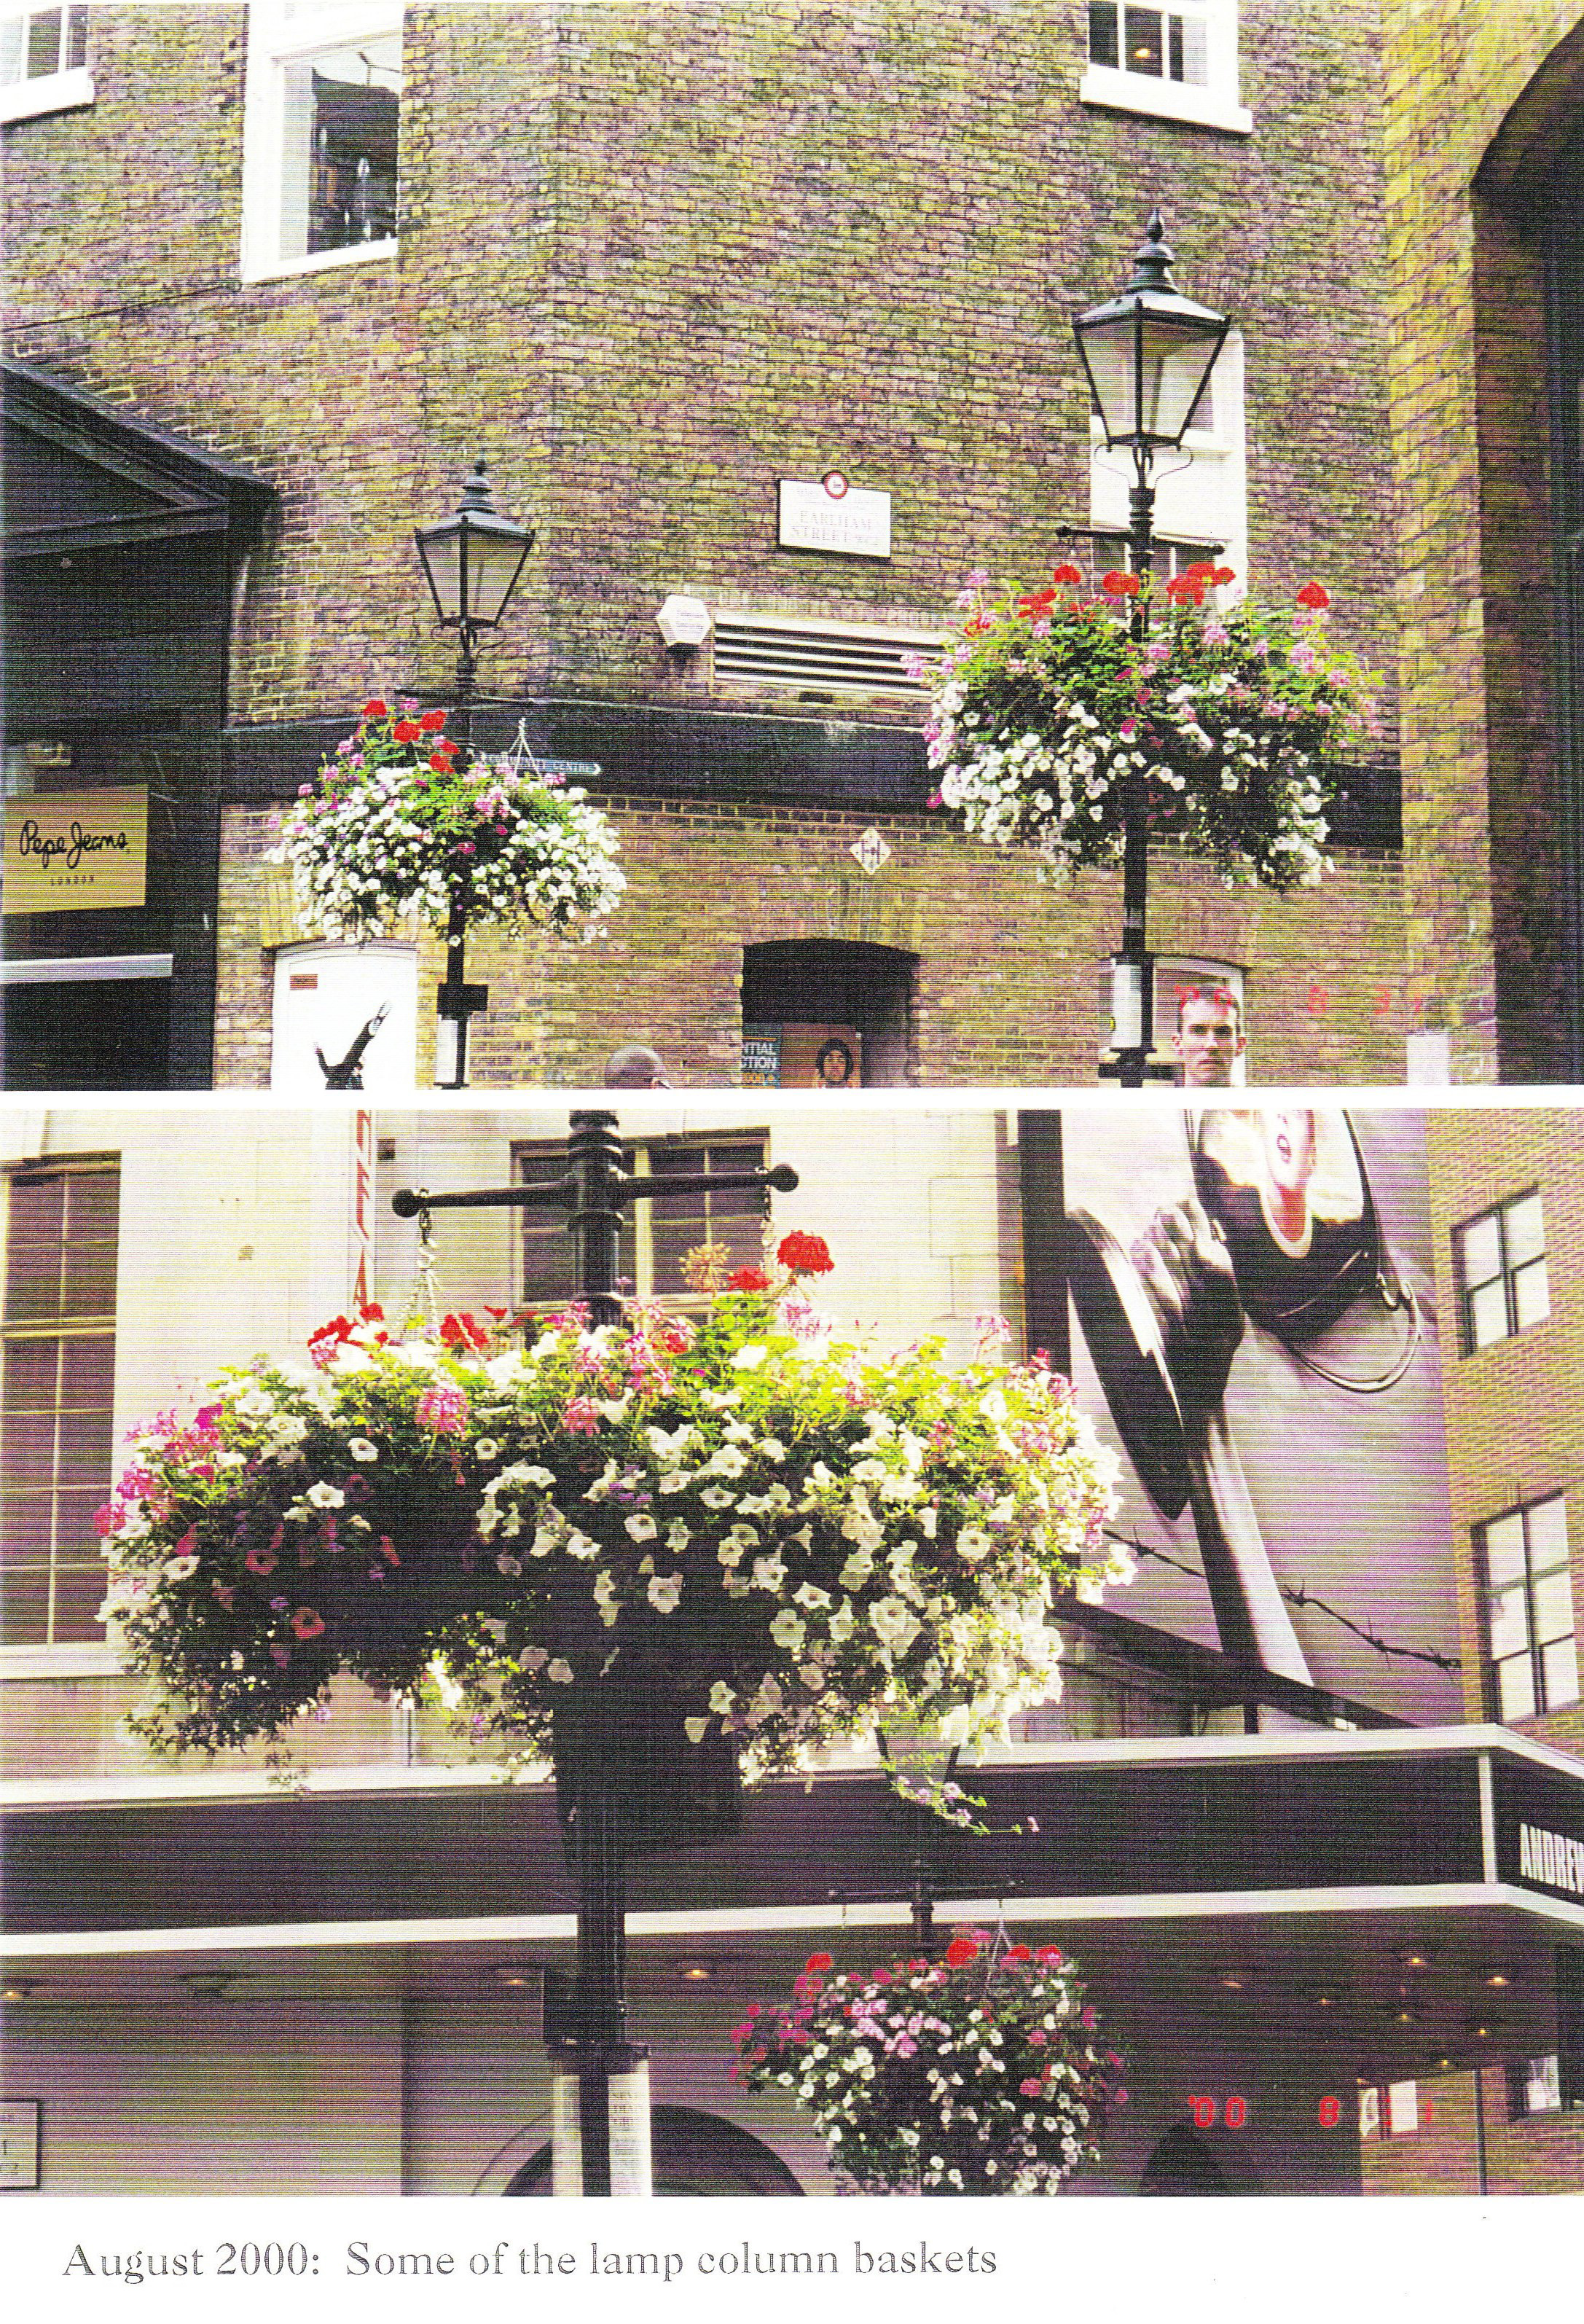 Hanging baskets planted by the children, in Earlham Street.